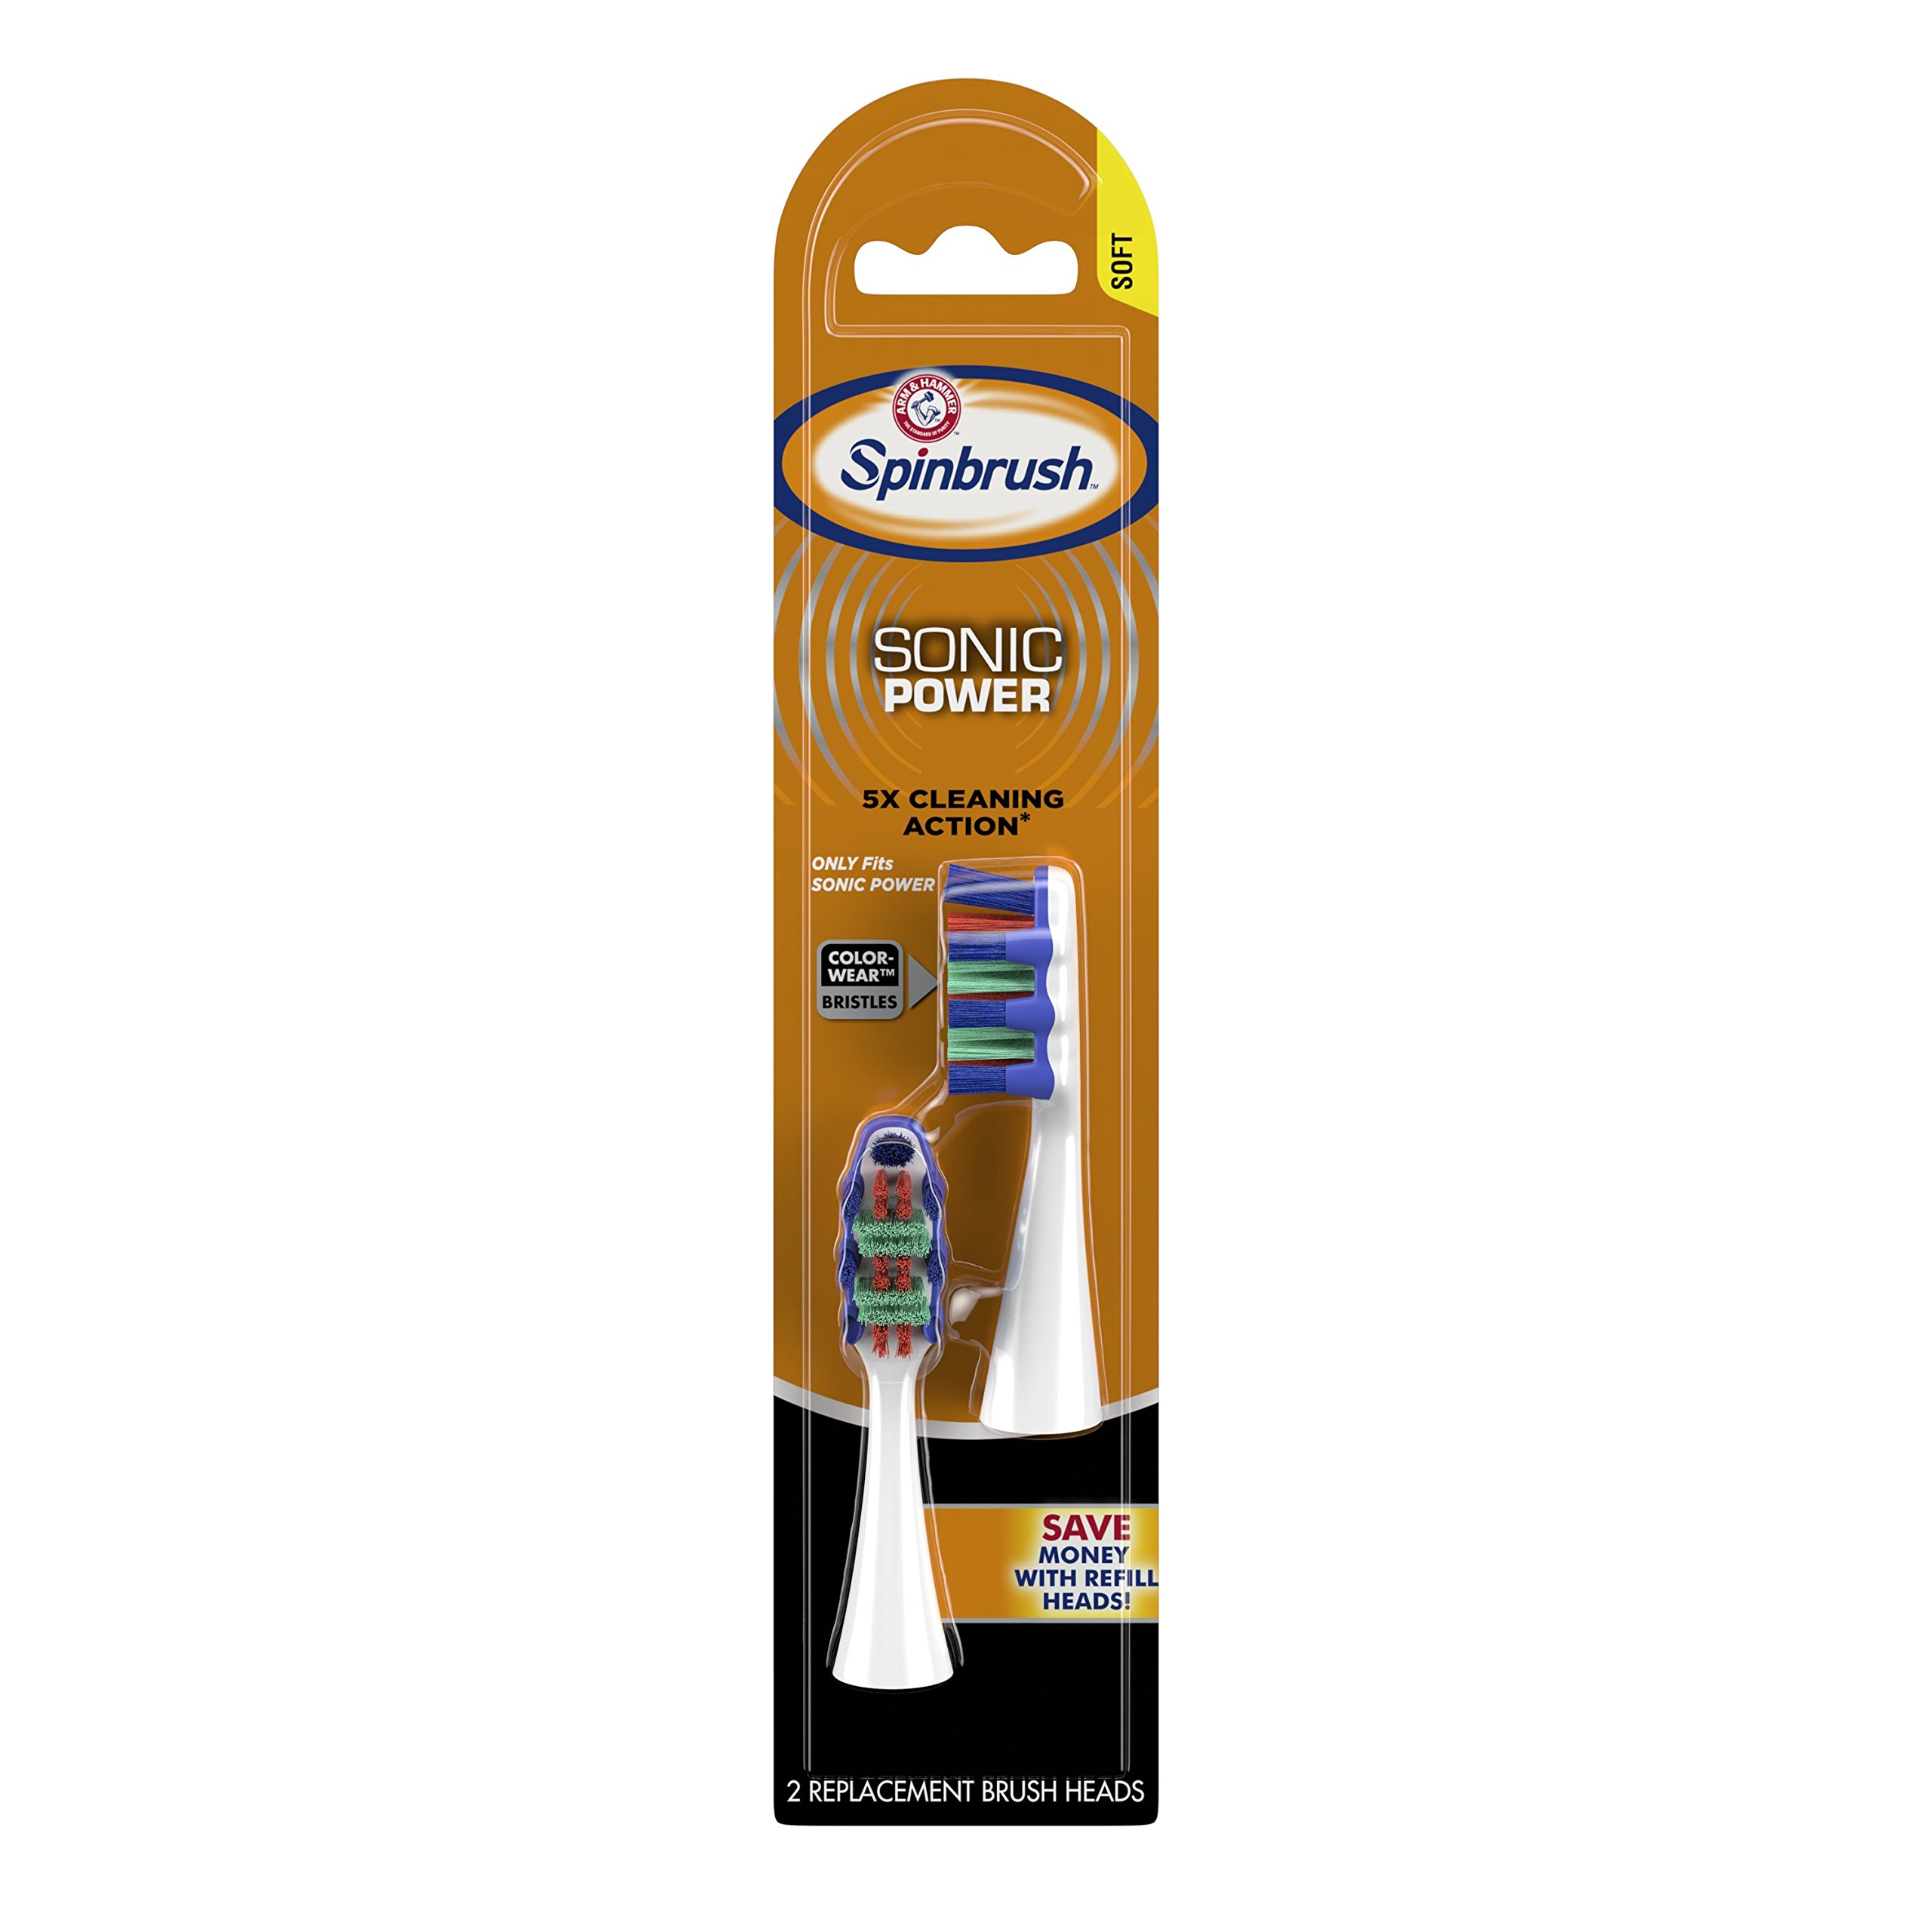 Spinbrush Sonic Power Truly Radiant Soft Replacement Brush Heads, 2 Heads (Packaging May Vary)